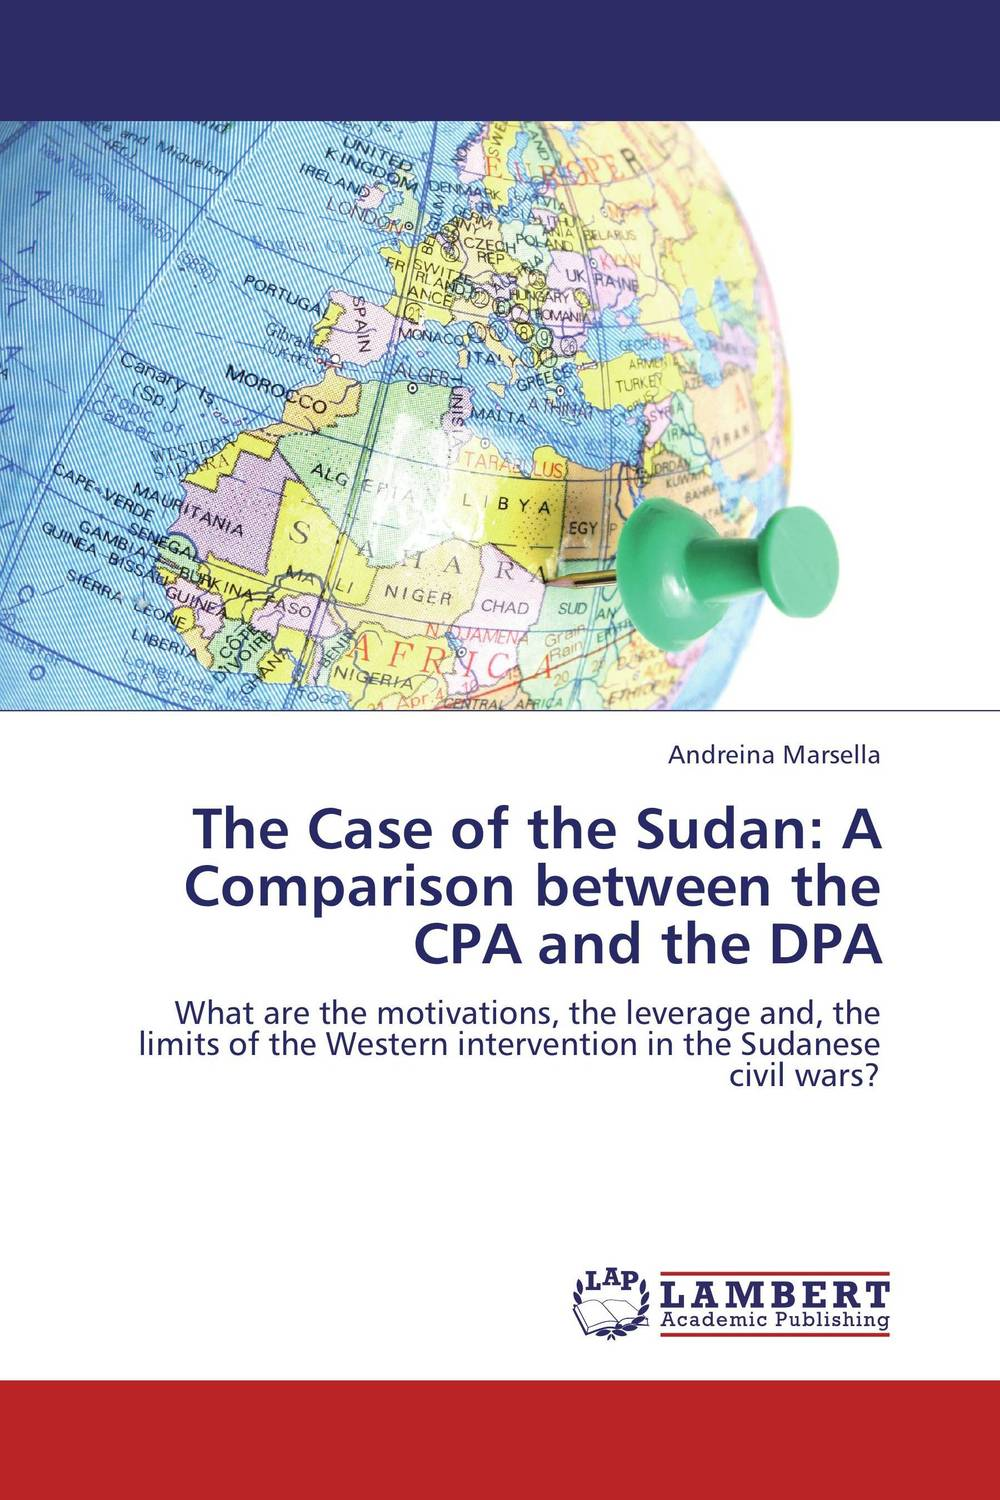 The Case of the Sudan: A Comparison between the CPA and the DPA north and south